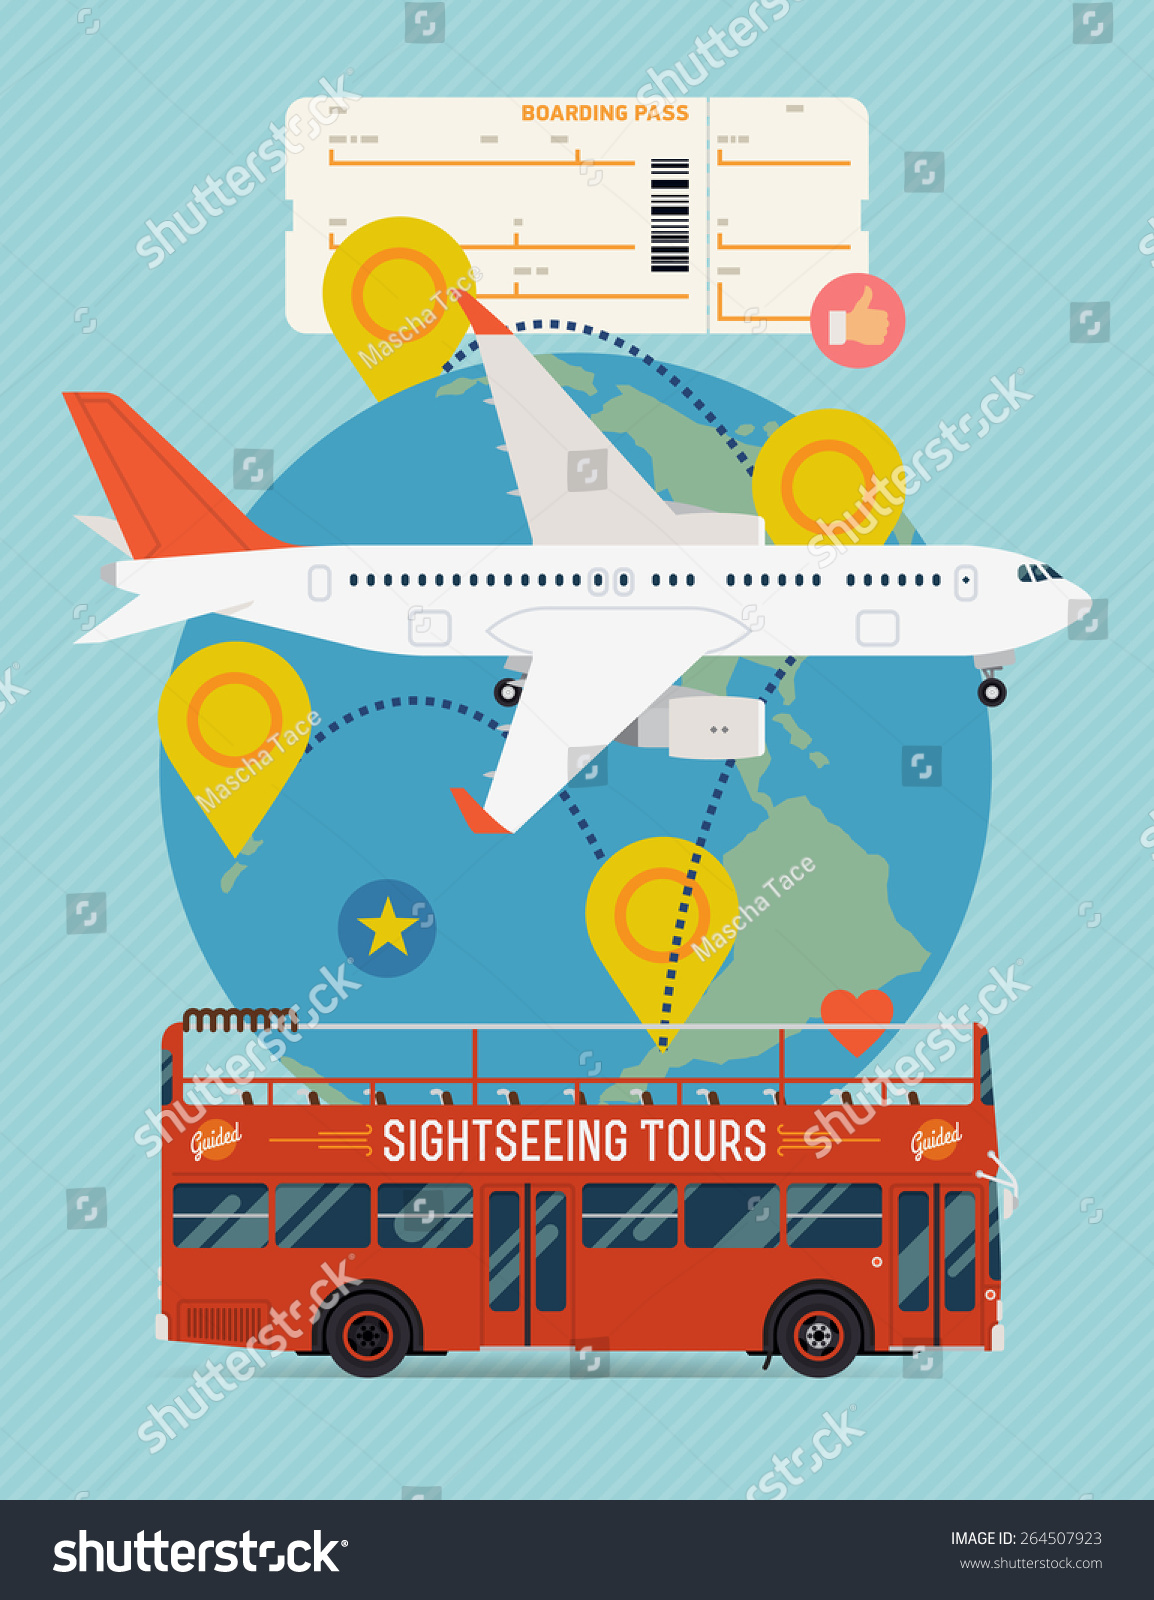 Vector cool flat design web banner on airline tickets and travel with jet airliner flying sightseeing bus boarding pass ticket and globe with clouds route marks and location pins